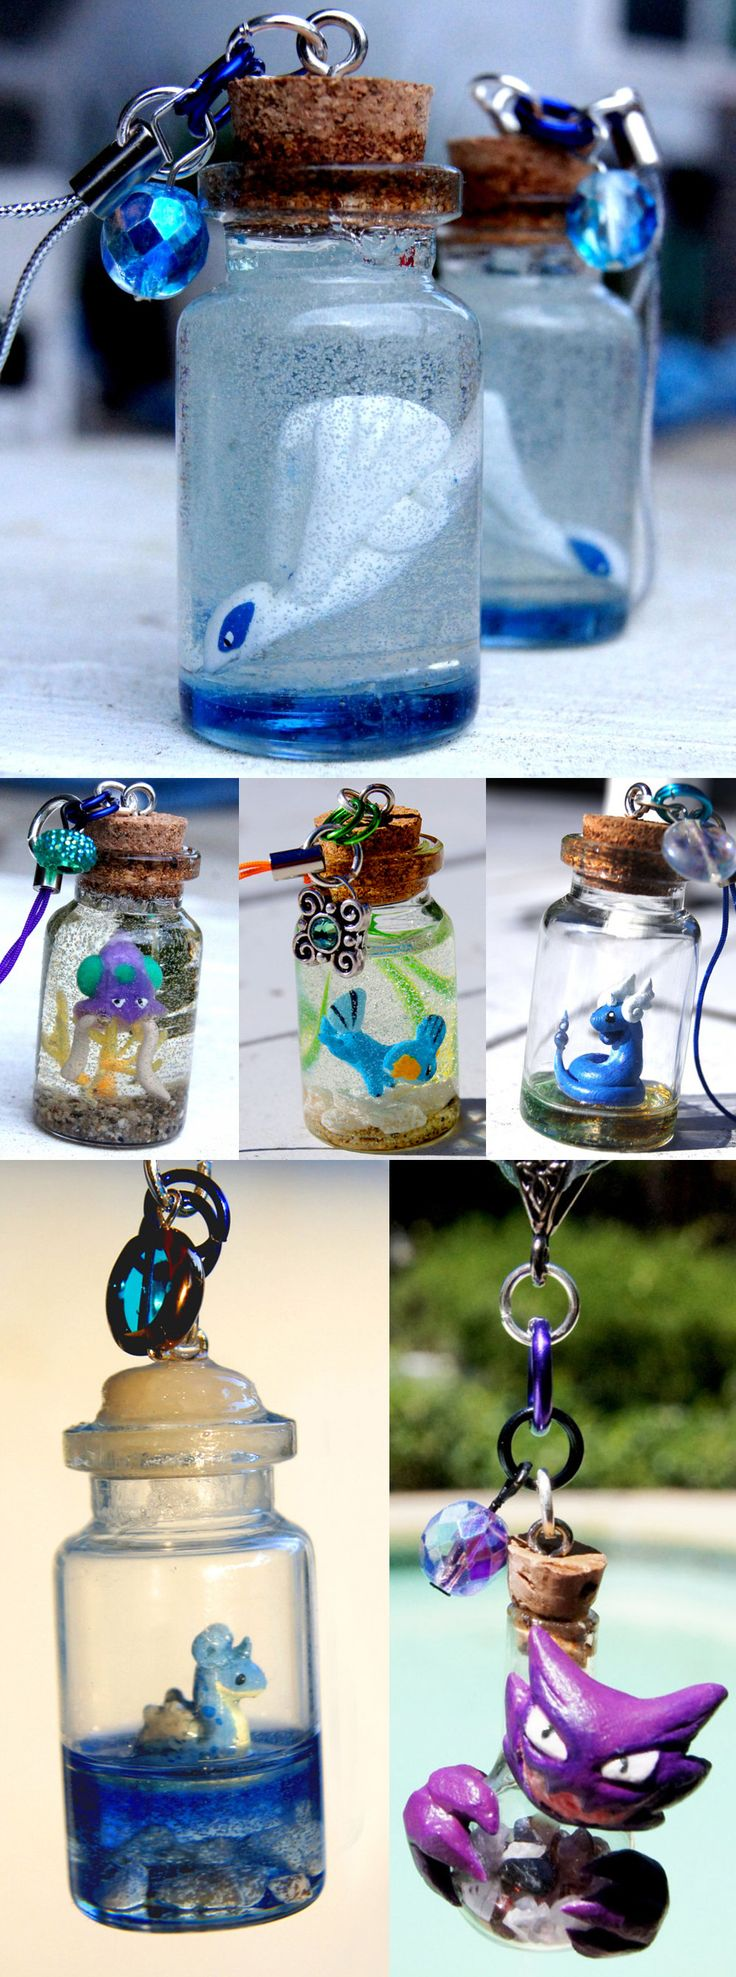 It would be more humane to keep Pokemon in these adorable glass bottles instead of trapped inside a Pokeball all day. These miniature critters seem much happier as they're carefully cased with their preferred surrounding environment. #pokemon